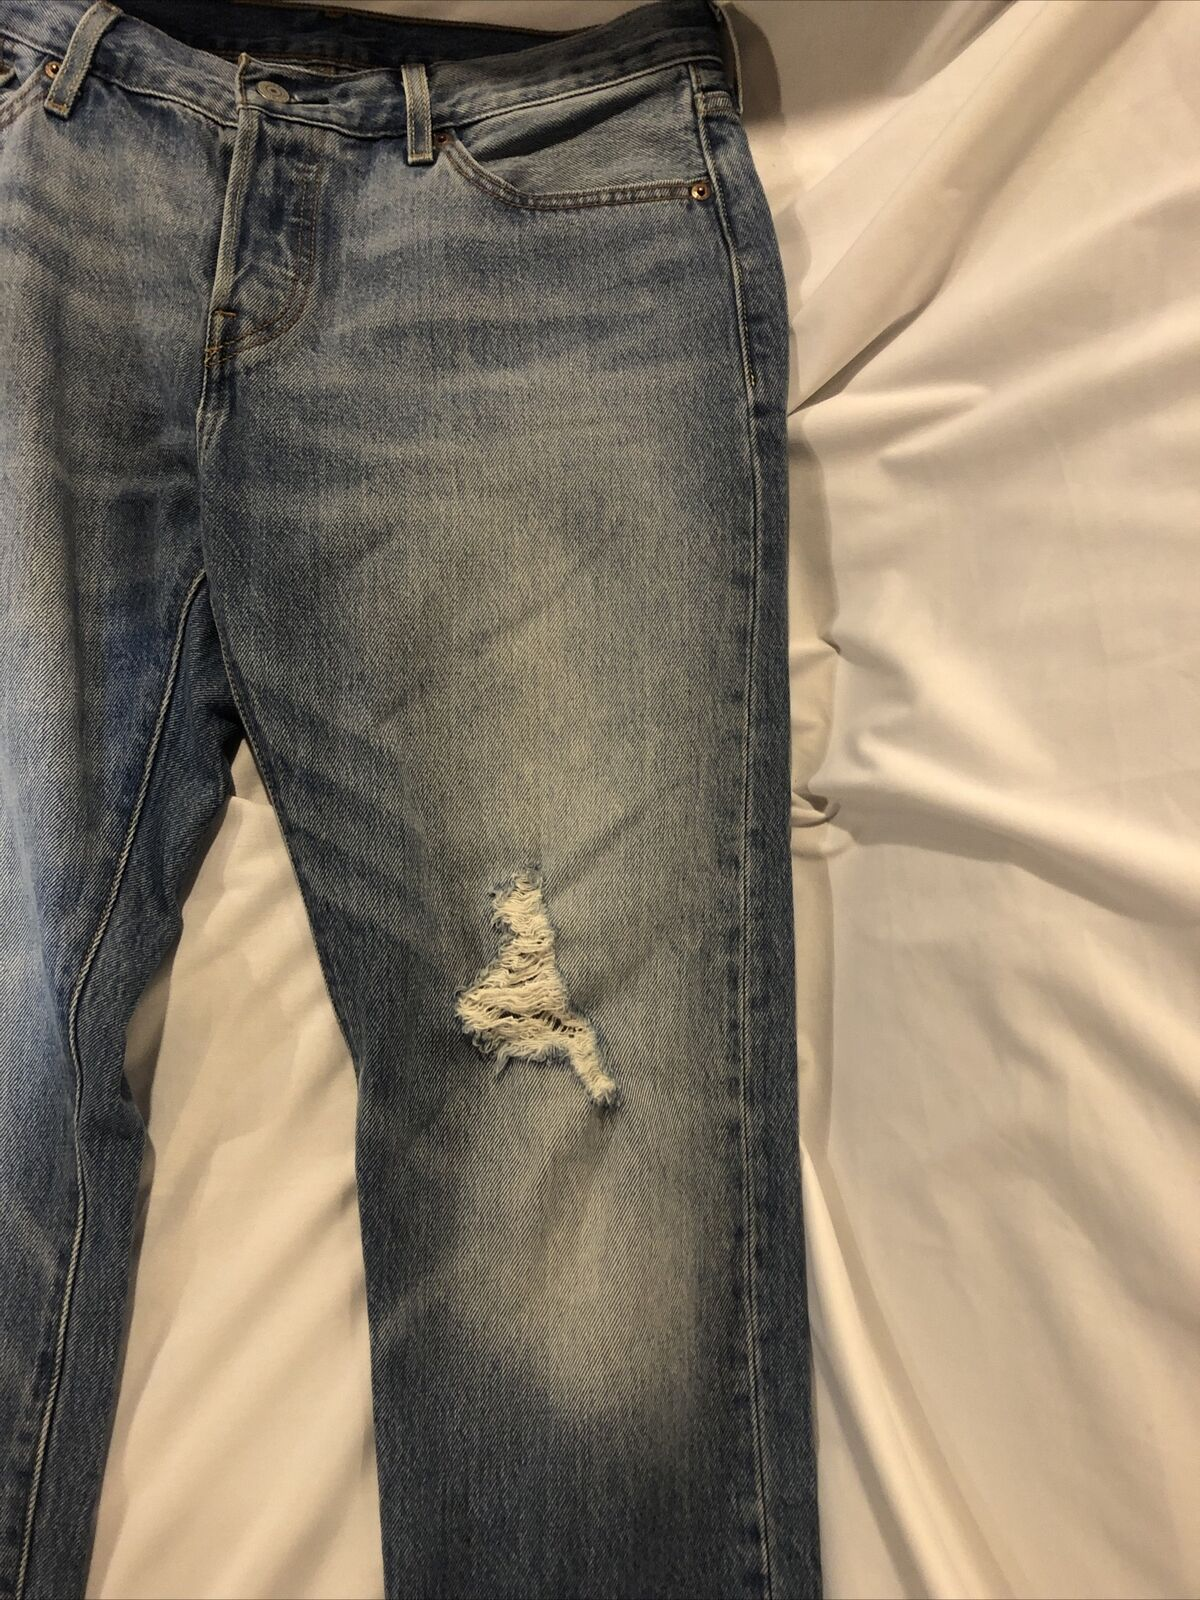 Levis Distressed 501 CT Jeans Size 28/32 - image 7